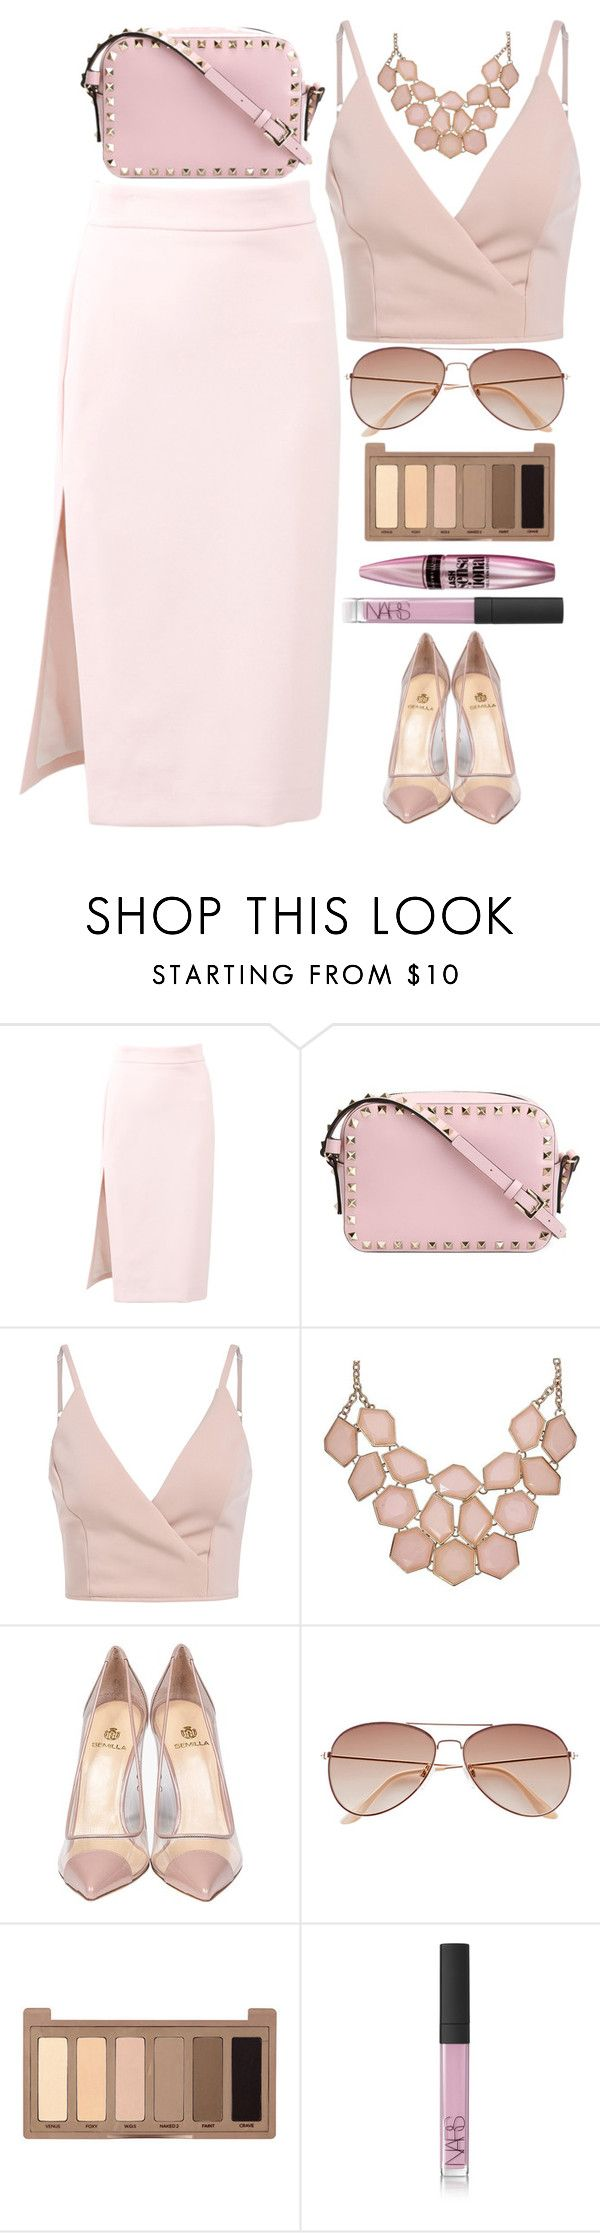 """""""have a nice day girls!"""" by ecem1 ❤ liked on Polyvore featuring MSGM, Valentino, Semilla, H&M, Urban Decay, Maybelline and NARS Cosmetics"""